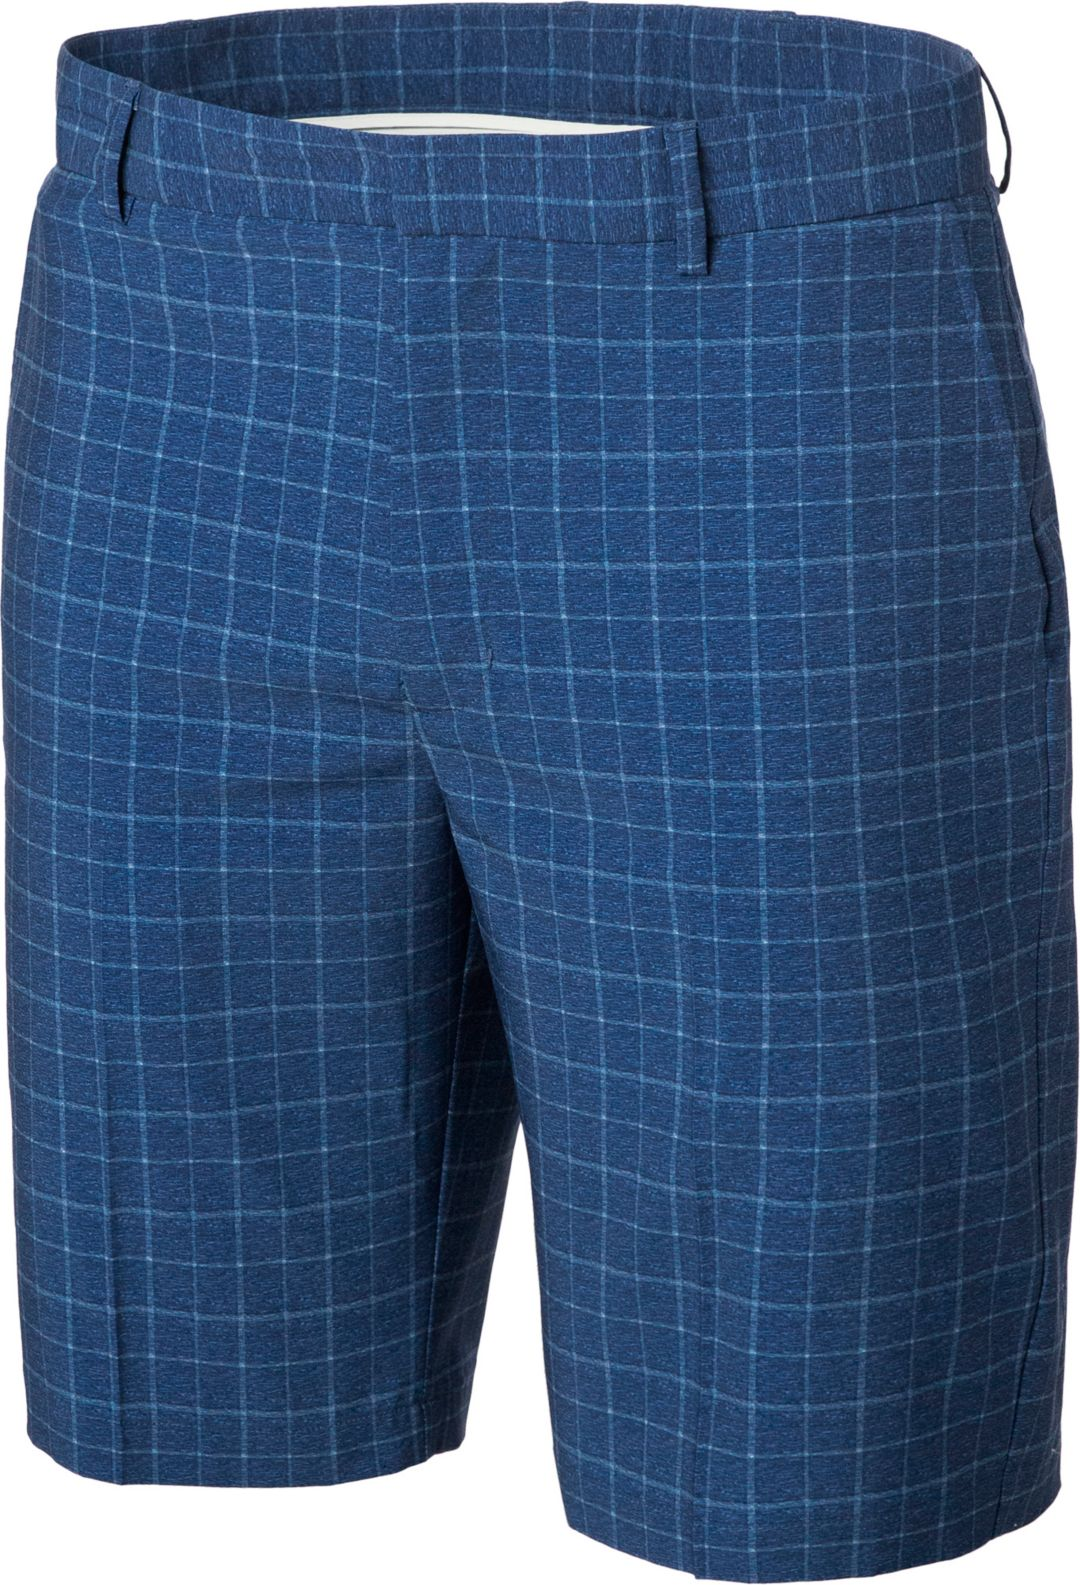 d056e9761 Walter Hagen Men's Windowpane Golf Shorts. noImageFound. Previous. 1. 2